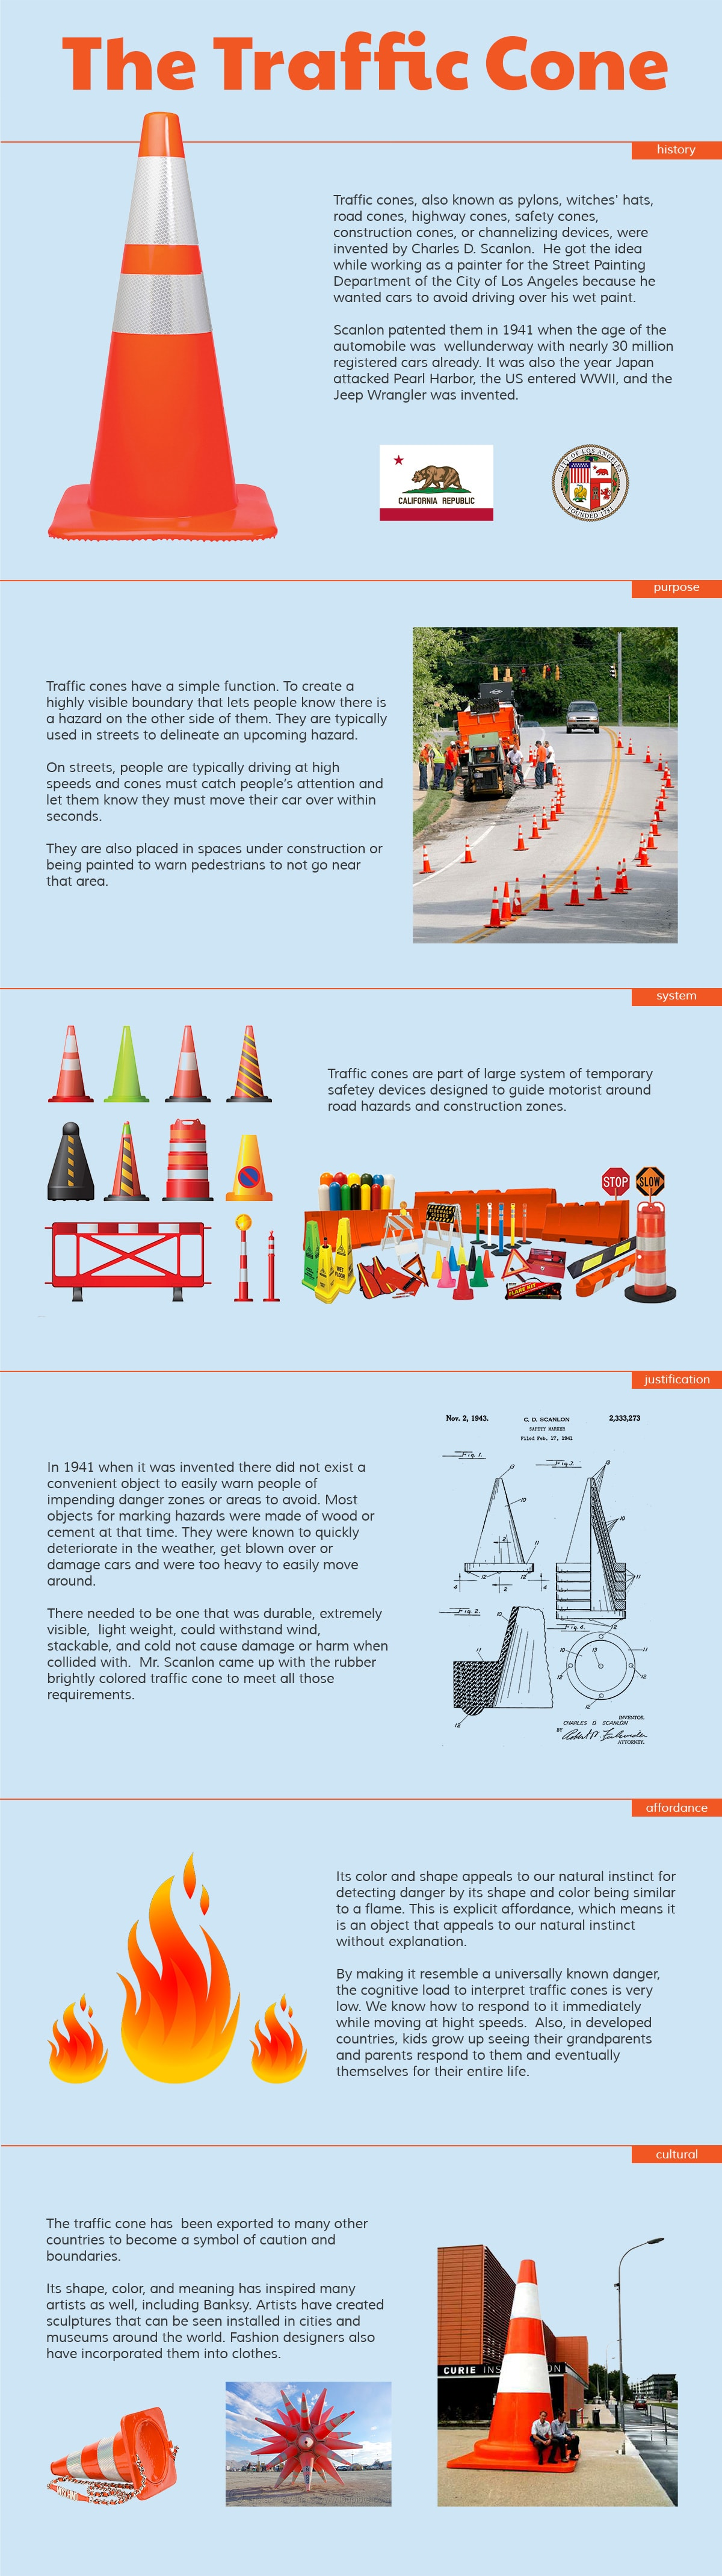 The Traffic Cone Infographic by Matthew T Rader